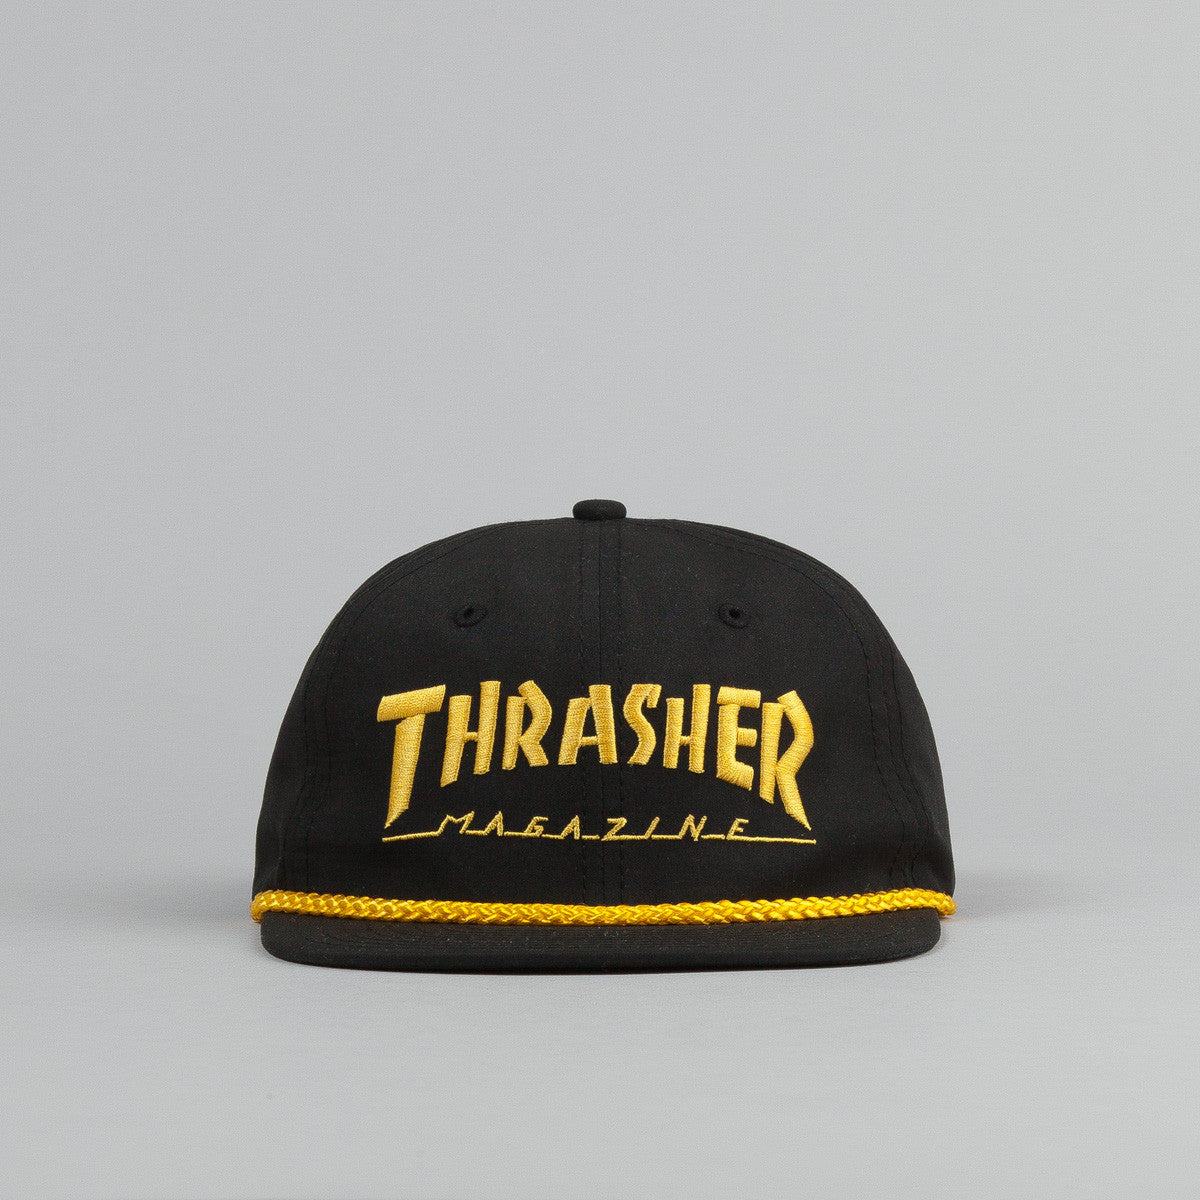 Thrasher Rope Snapback Cap - Black / Yellow